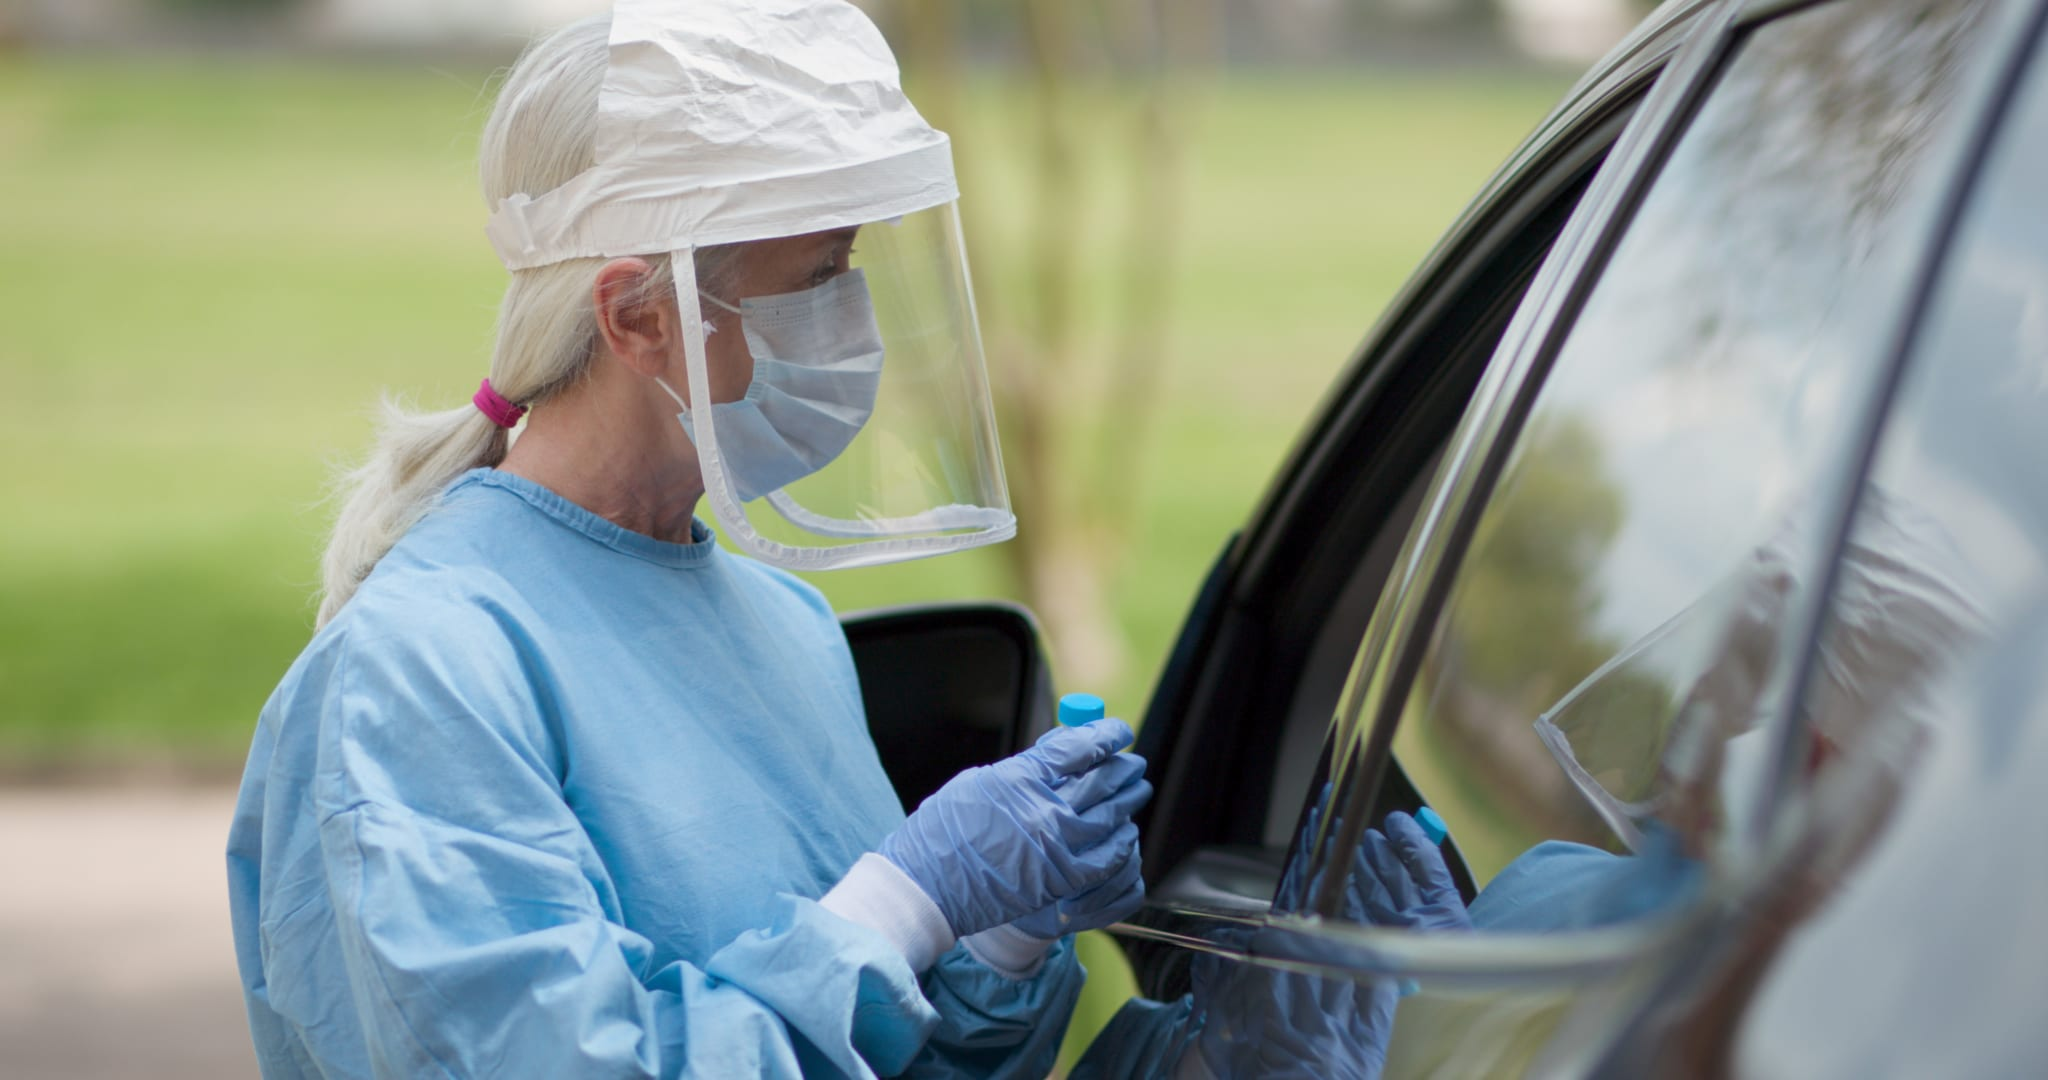 Image of a woman in full PPE testing a person in the car for COVID-19